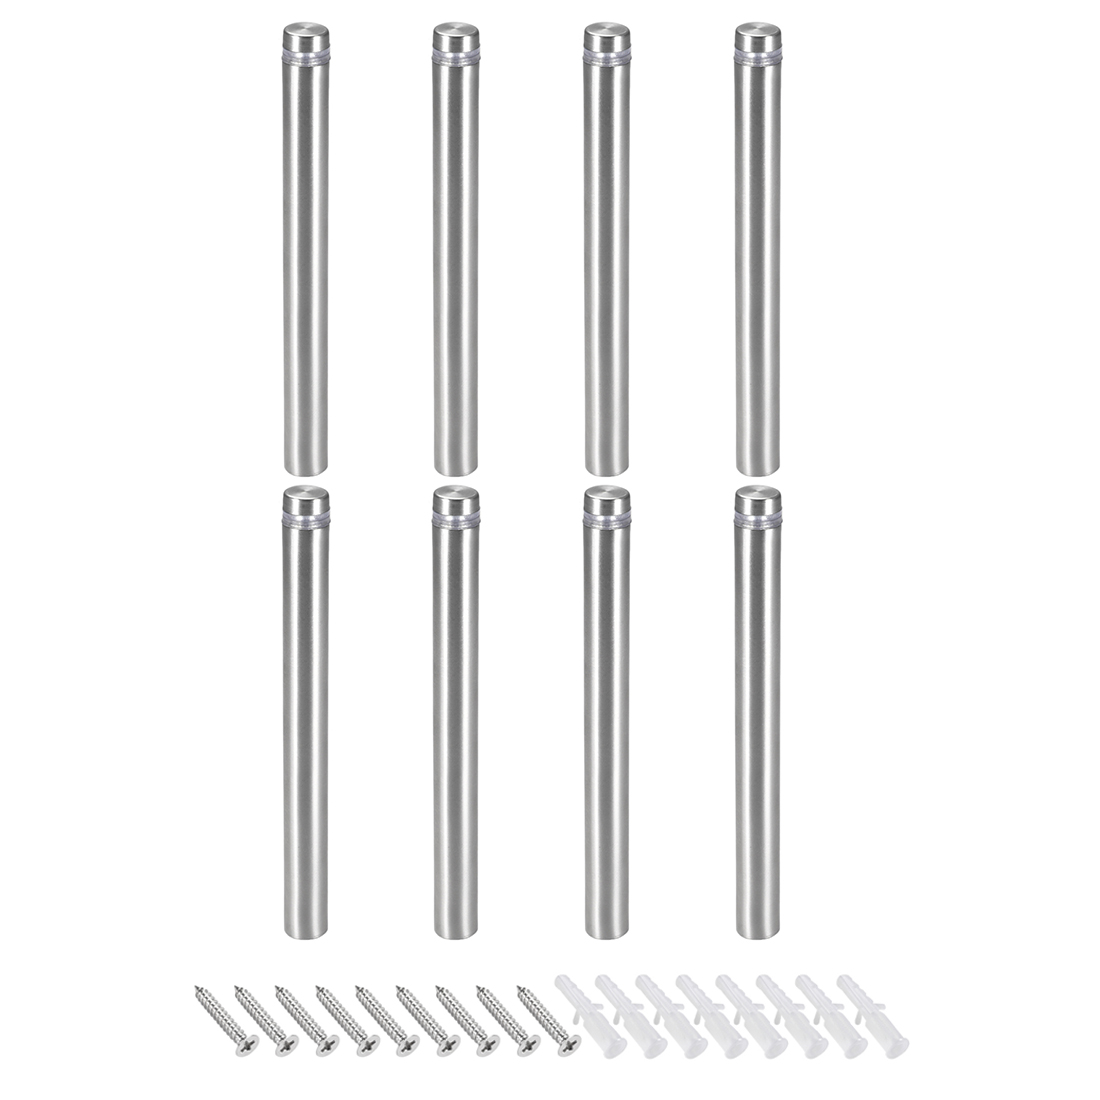 Glass Standoff Mount Stainless Steel Wall Standoff 12mm Dia 123mm Length 8 Pcs